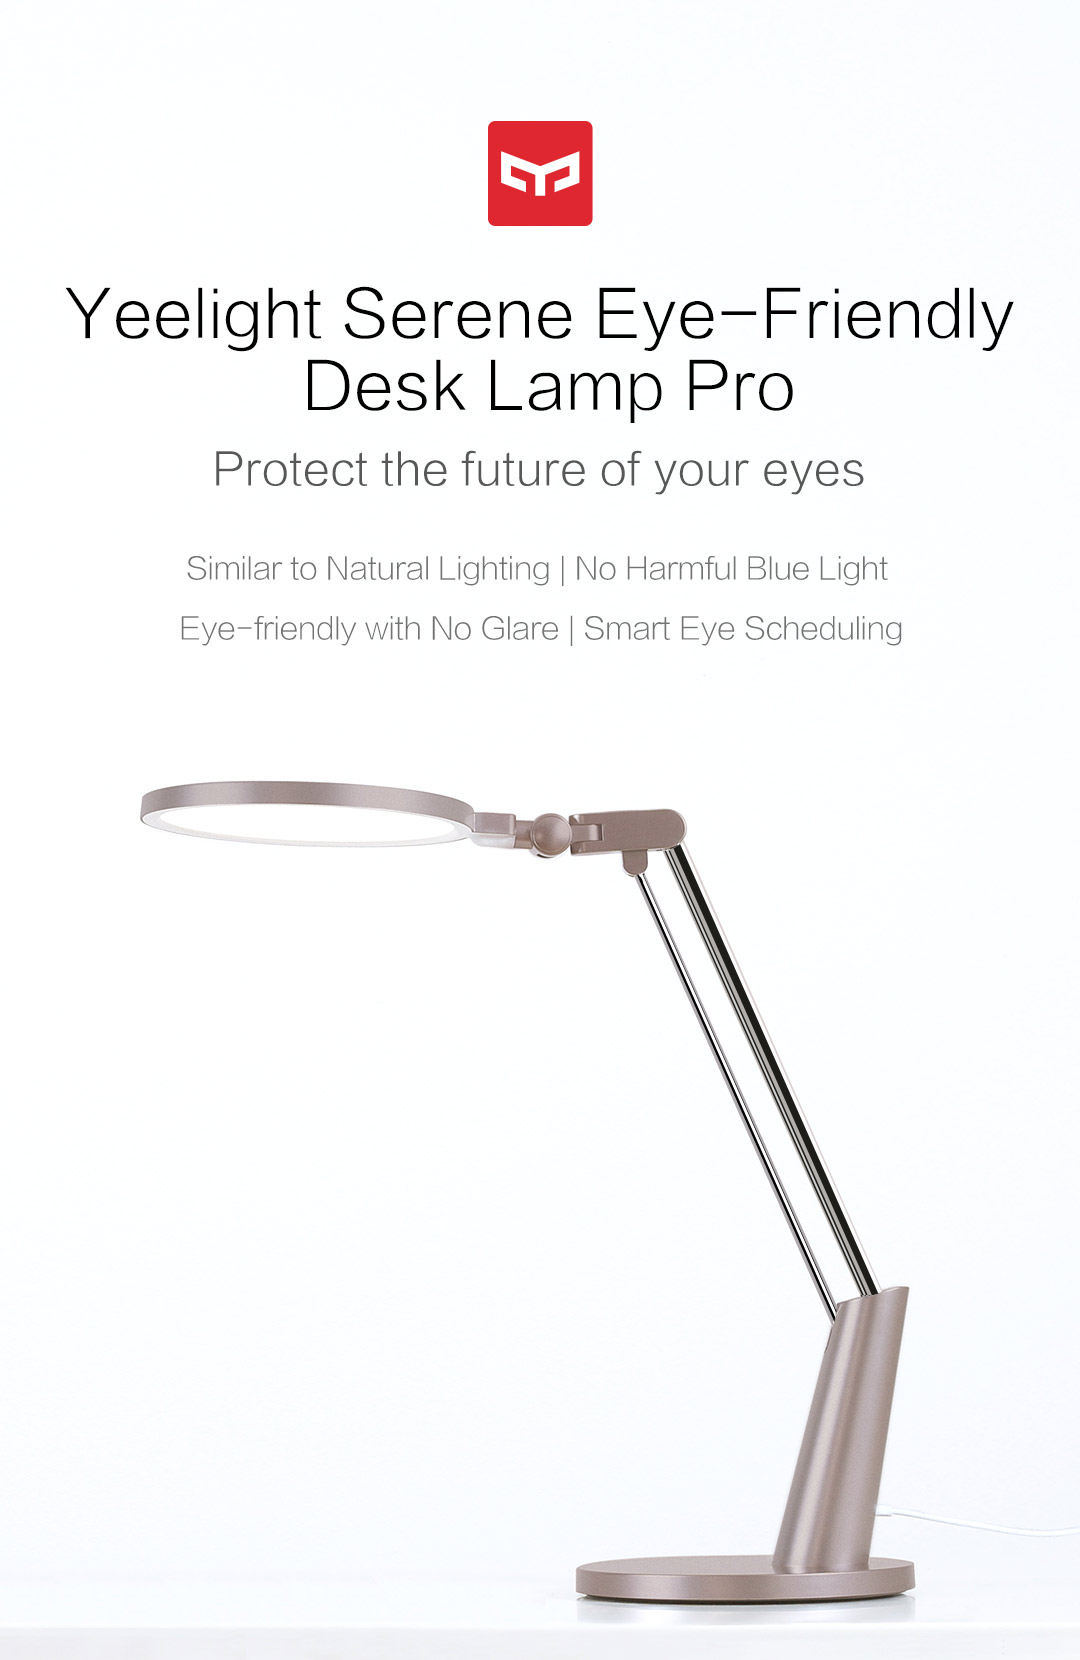 Serene Eye Friendly Desk Lamp Pro Yeelight Serene Eye regarding measurements 1080 X 1660